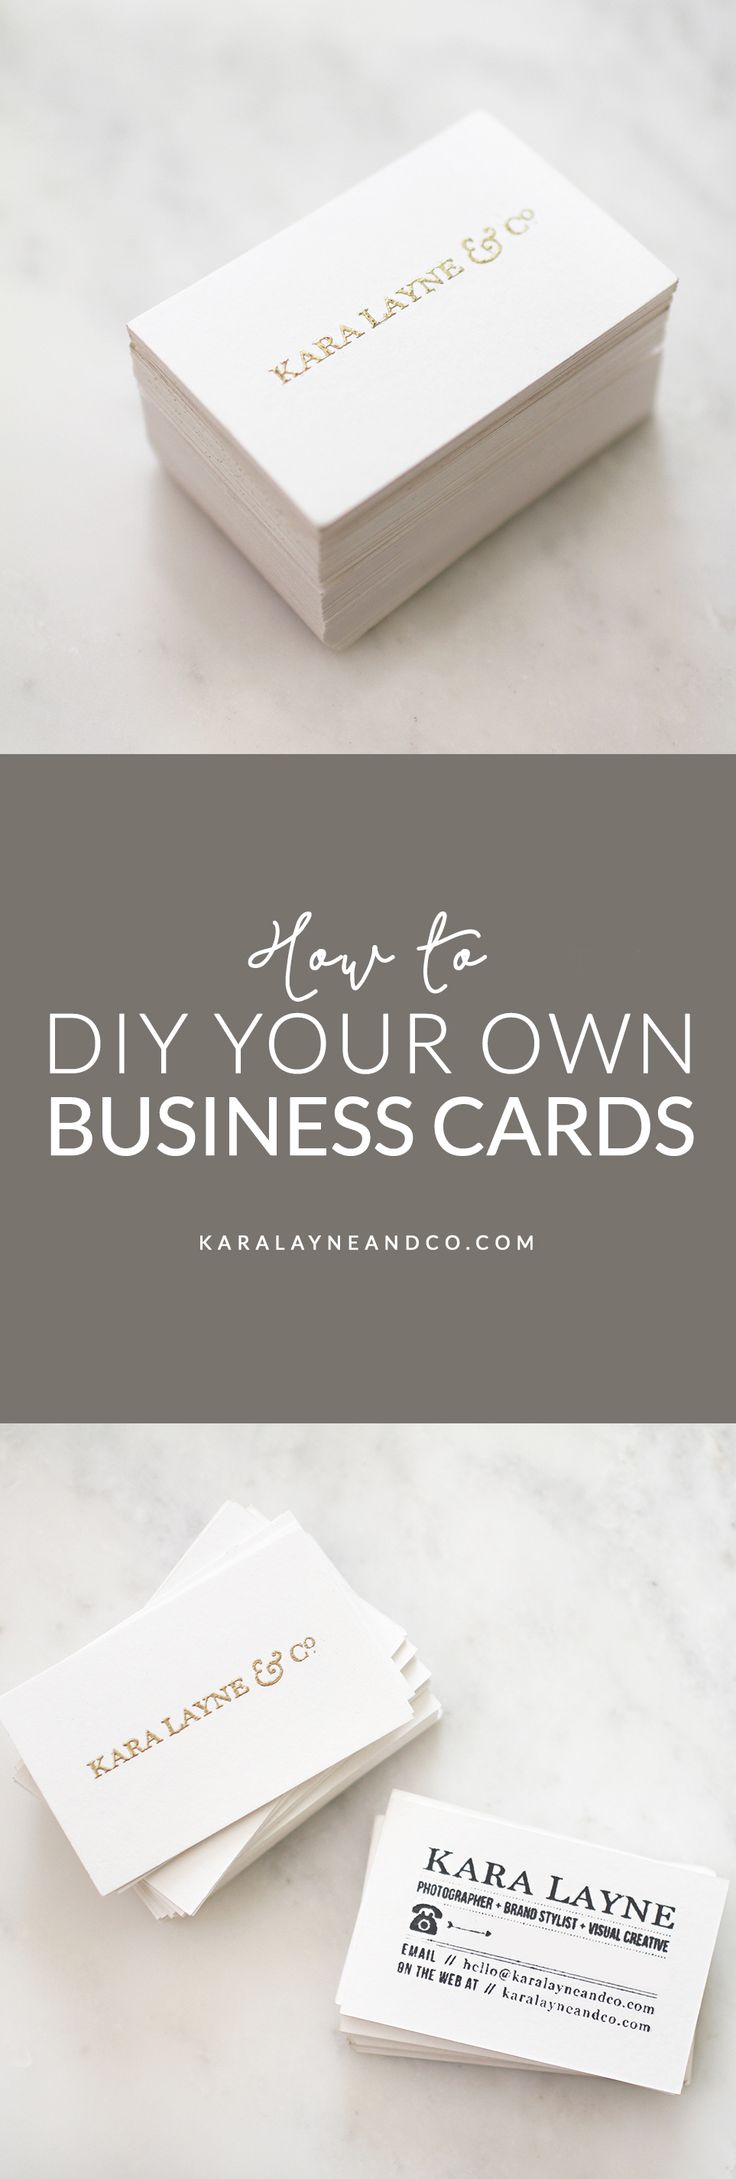 The 25 best business cards ideas on pinterest business for Make your own business card free